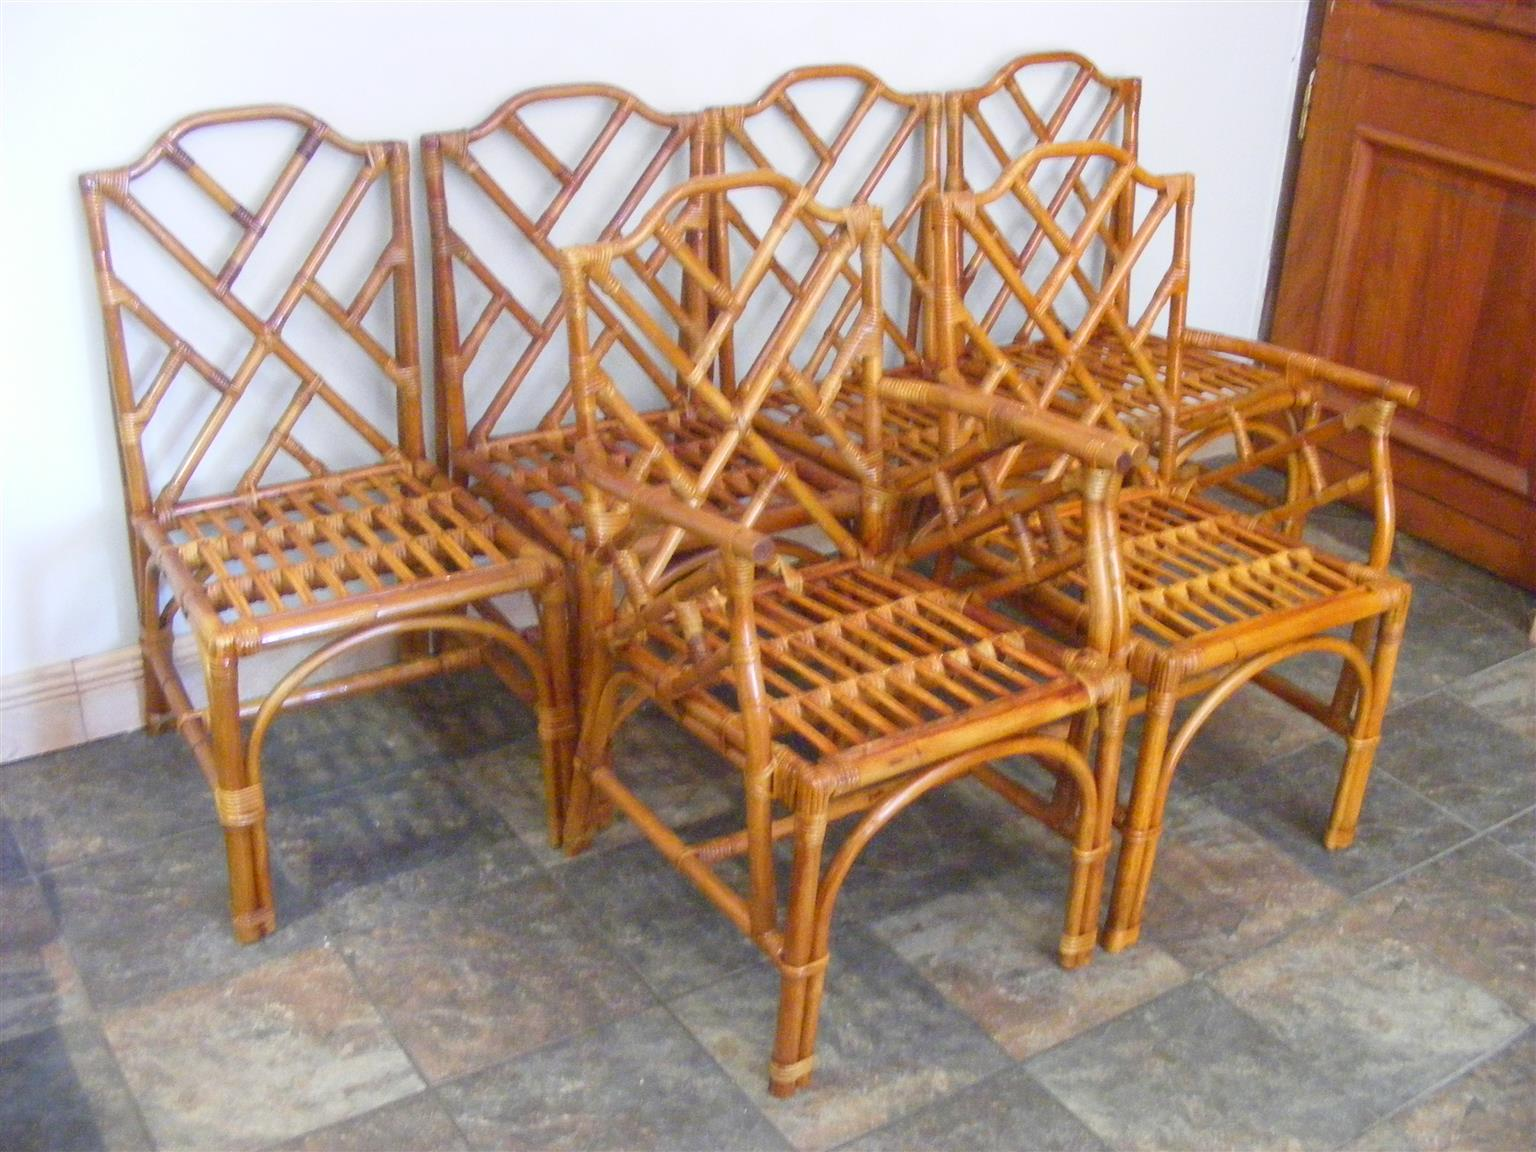 Six Imported Cane Dining Room Chairs Two With Arm Rests For Sale